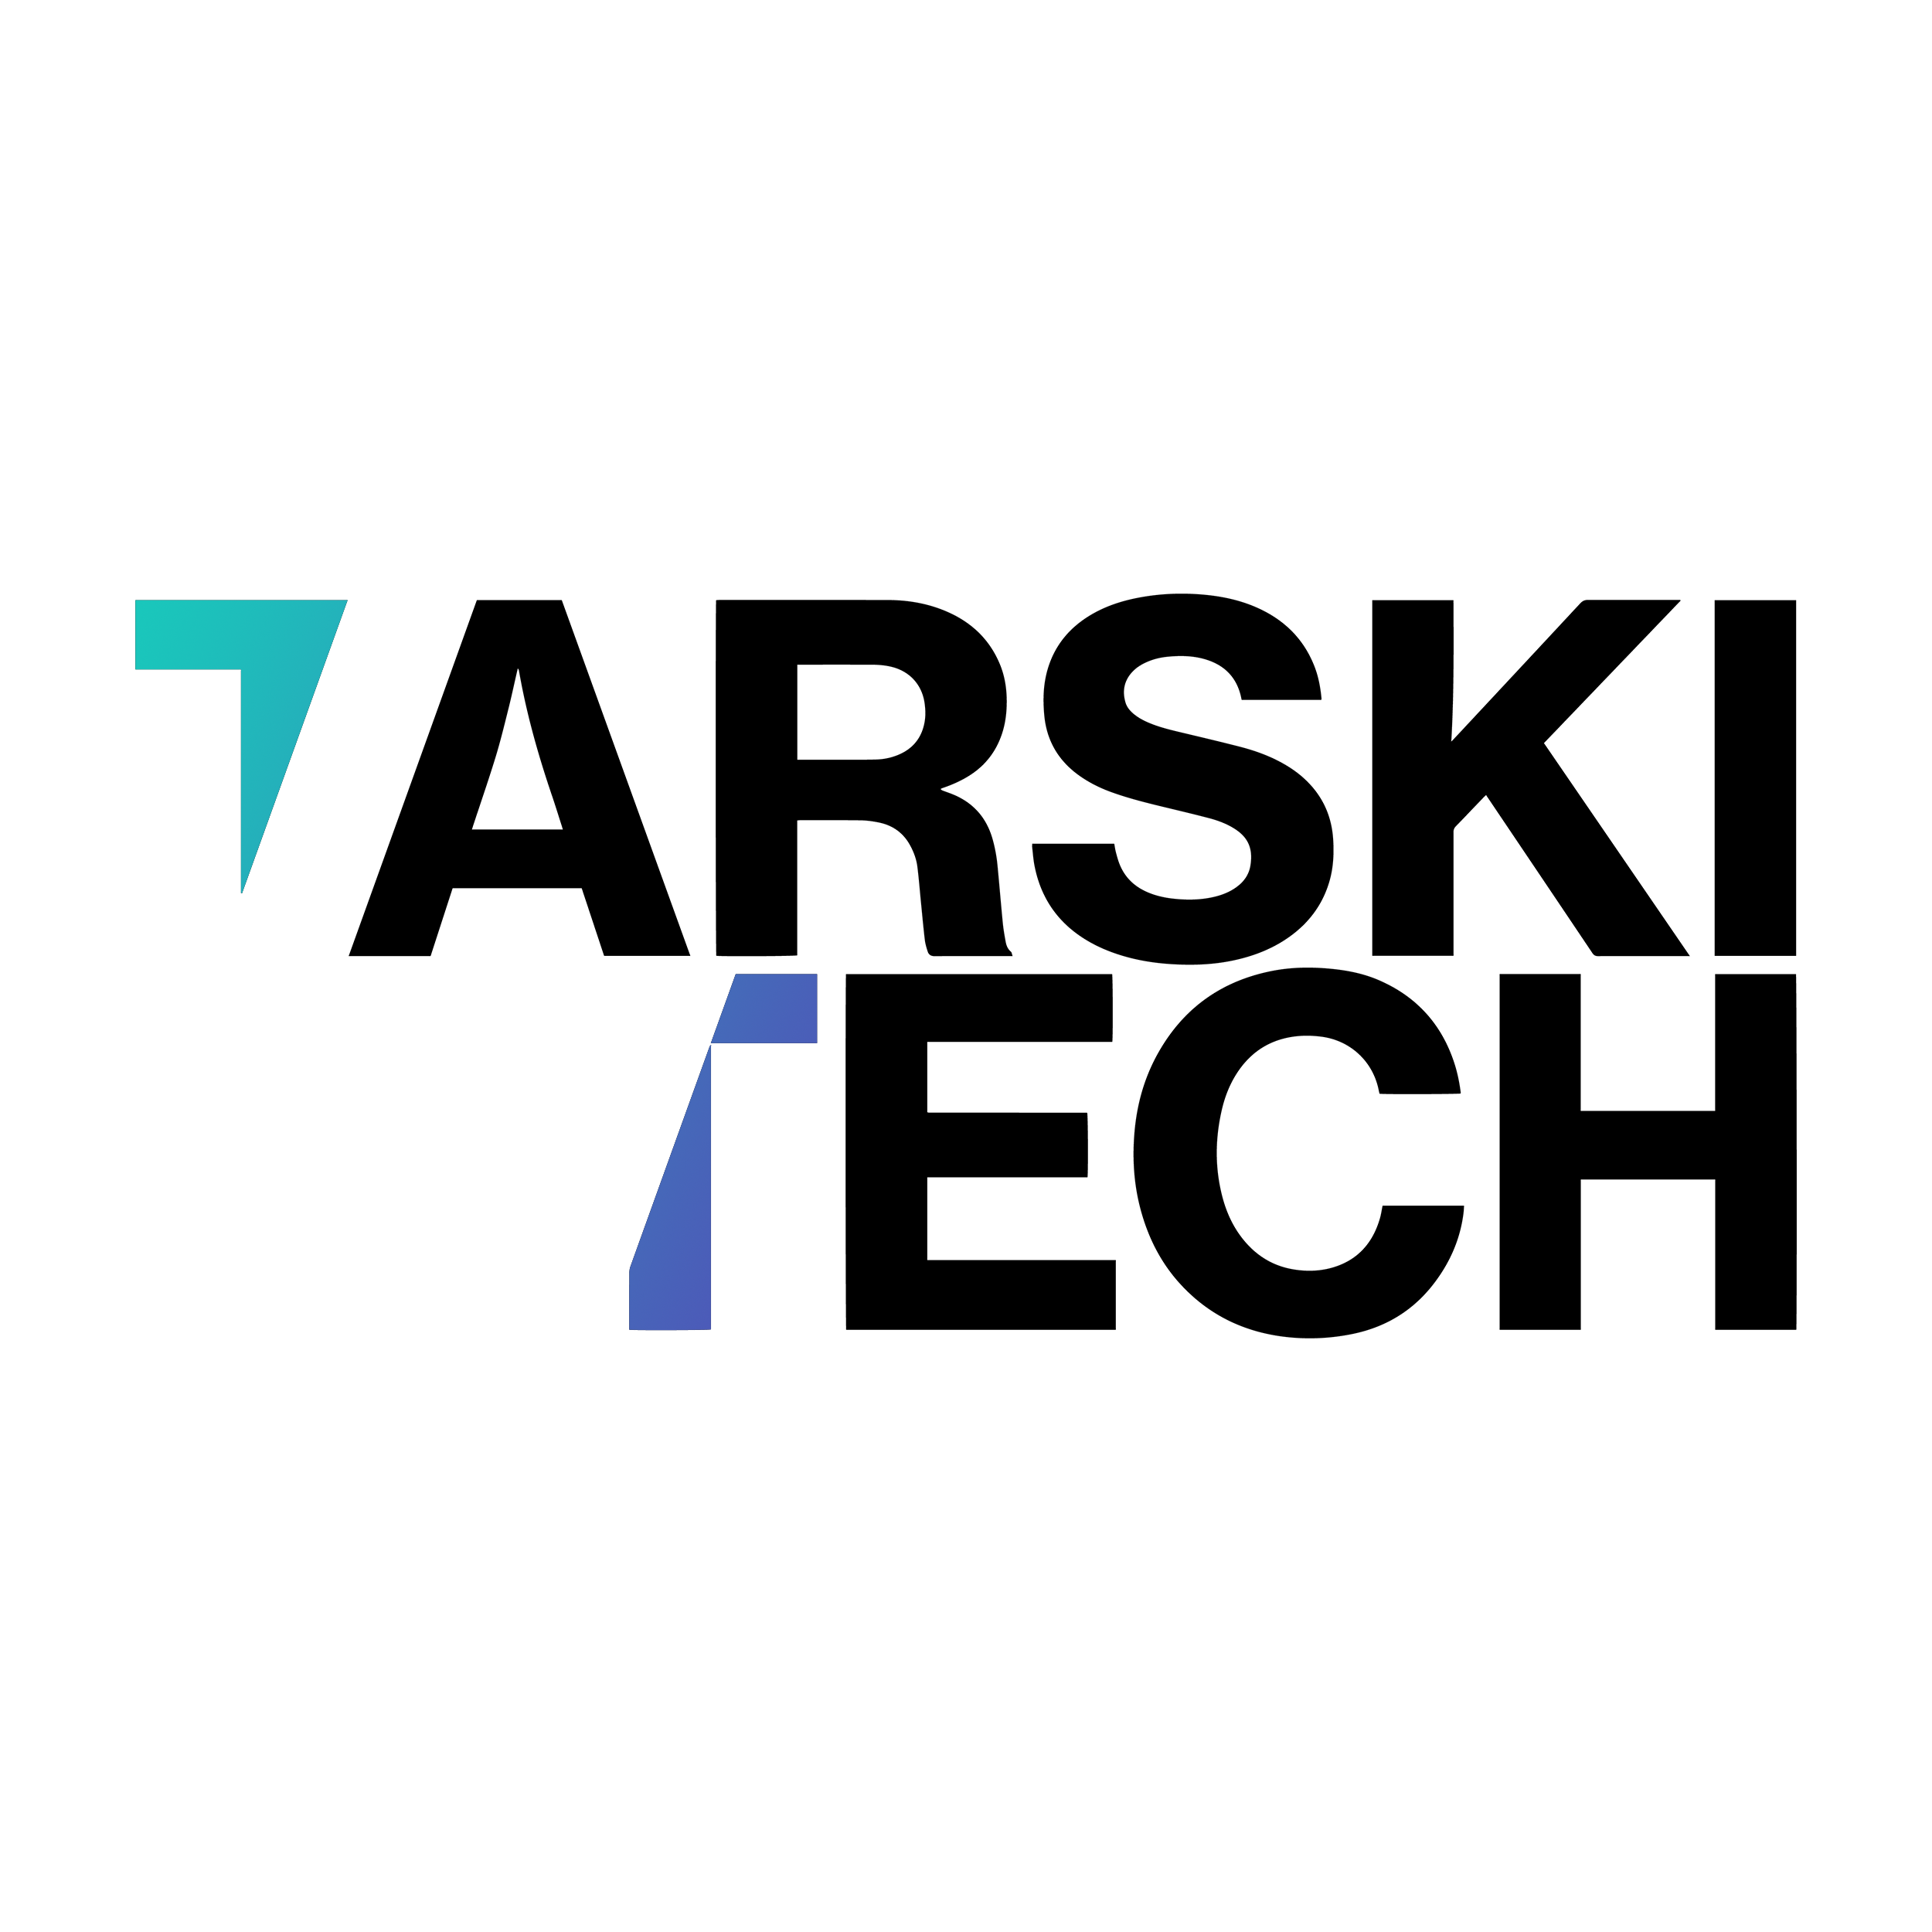 tarski tech text logo 2019.png